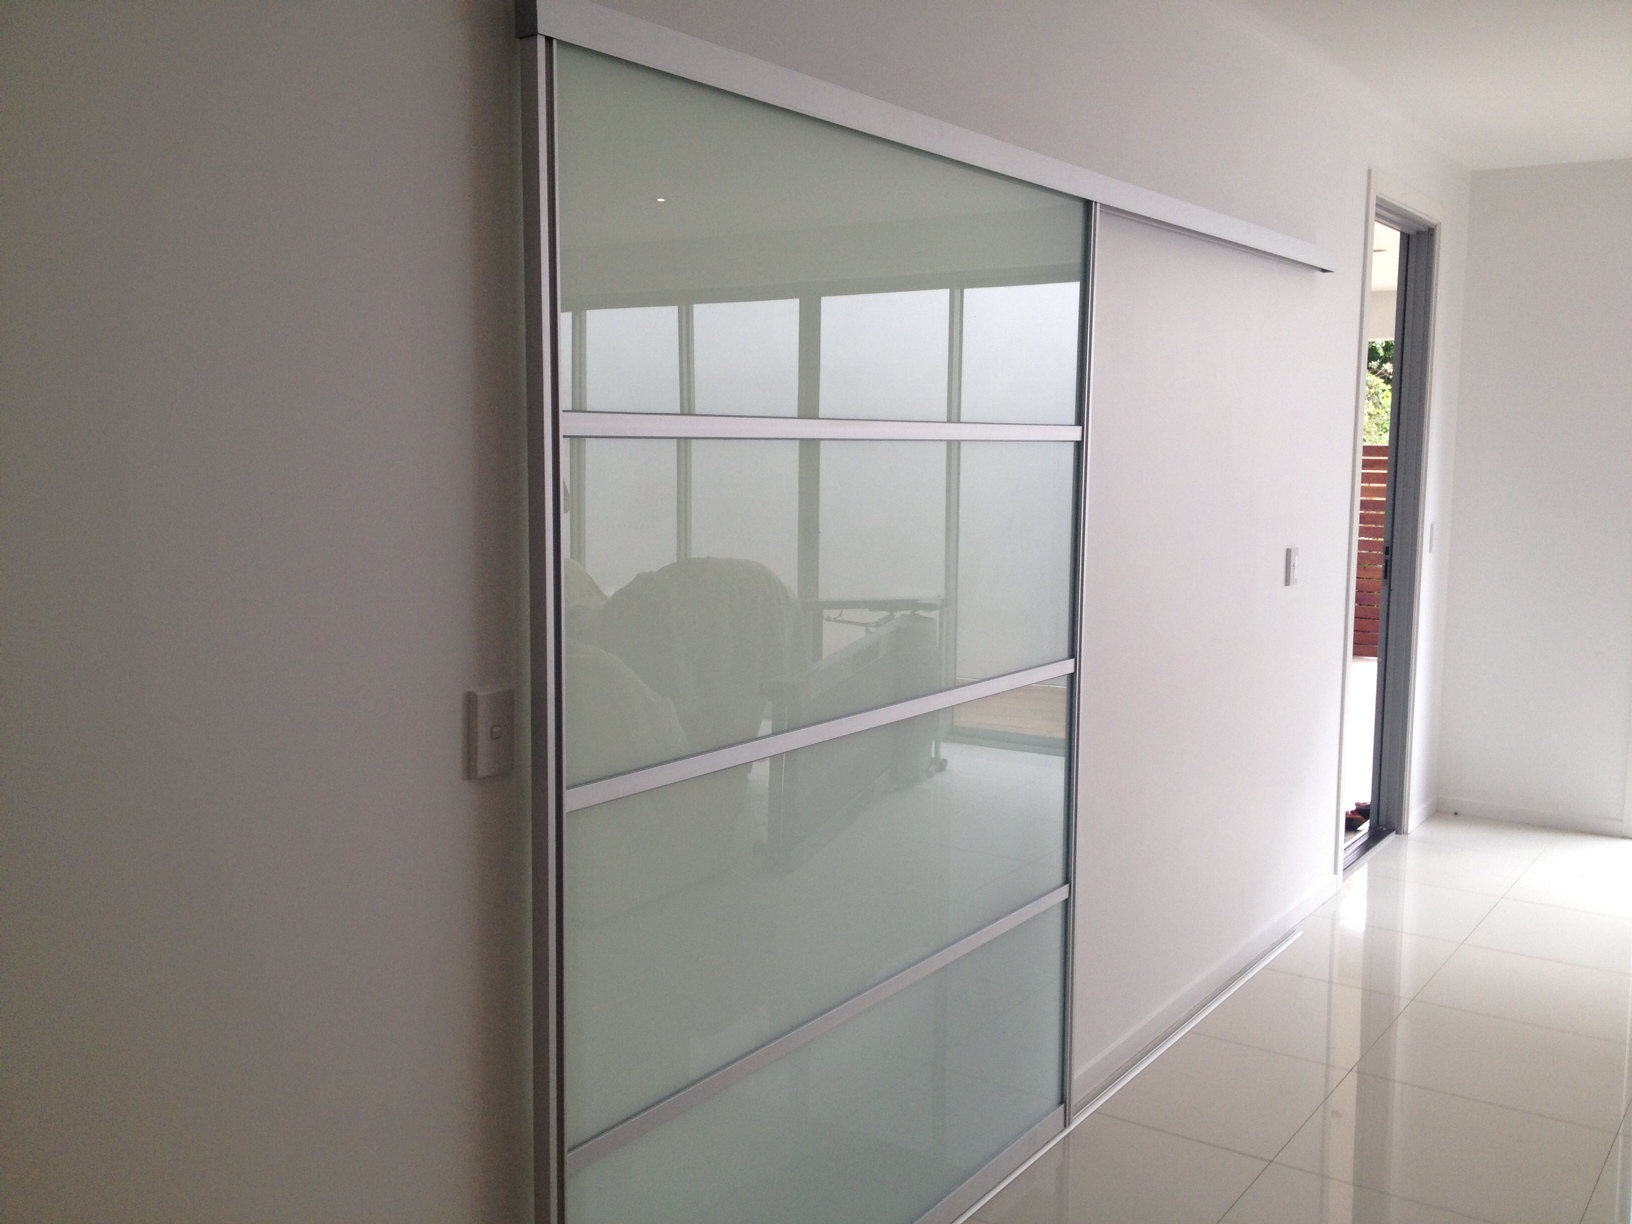 Interior Sliding Glass Door 1632 x 1224